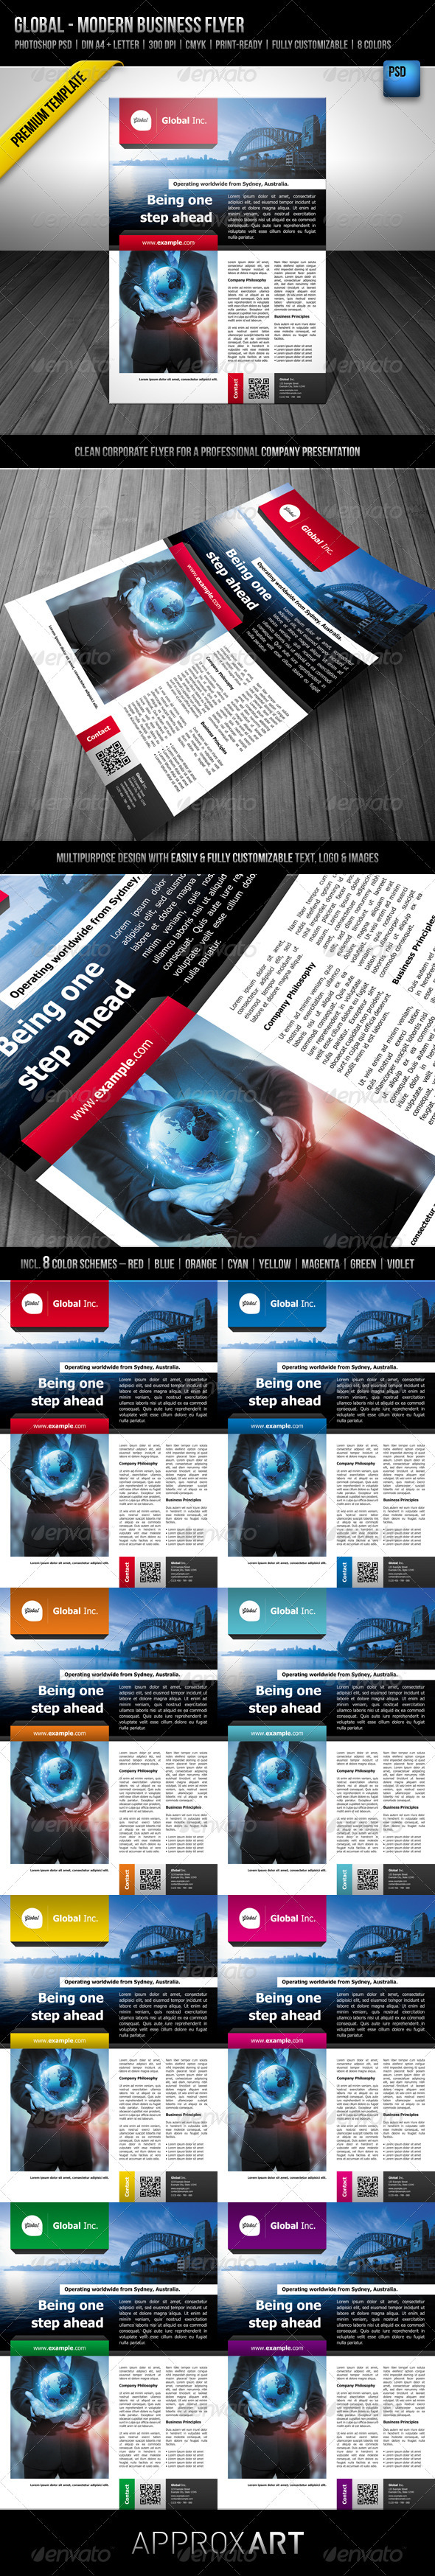 Global - Modern Business Flyer - Corporate Flyers